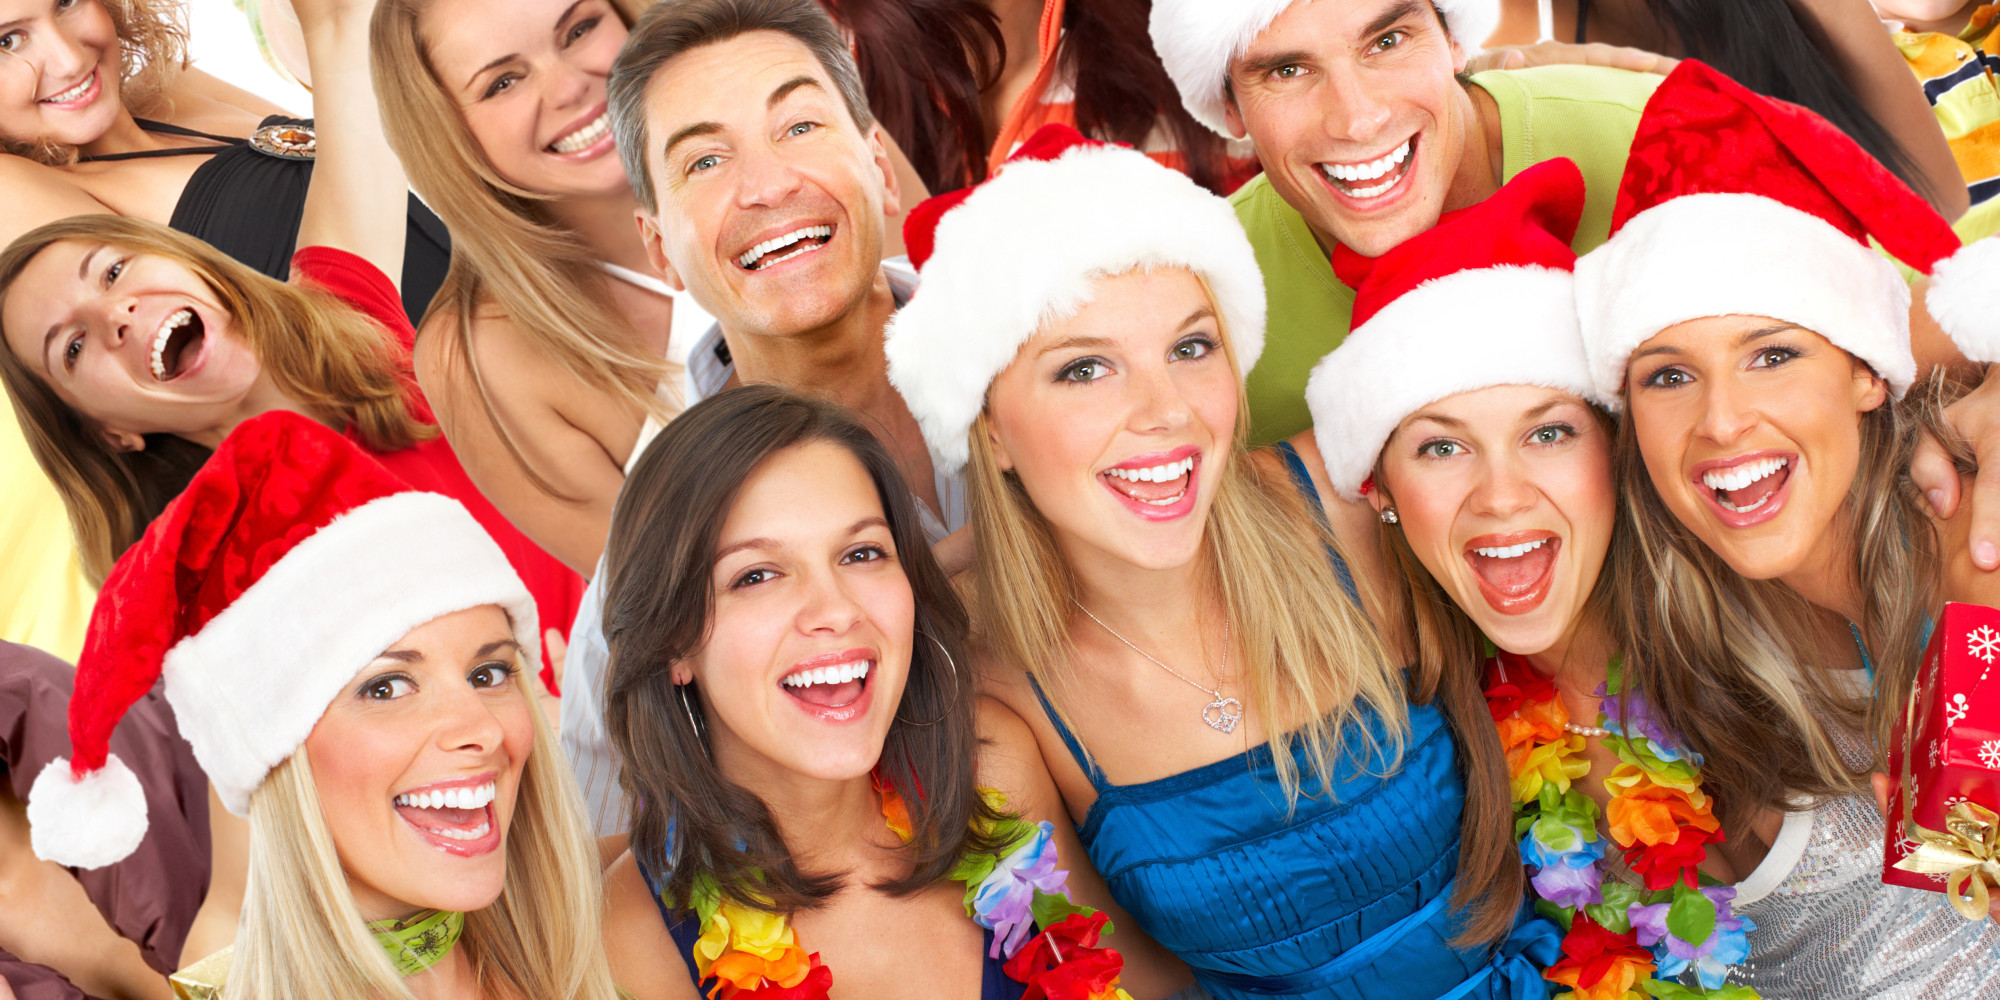 http://leiderenglish.com/wp-content/uploads/2015/10/Leider-CHRISTMAS-PARTY-HAPPY.jpg